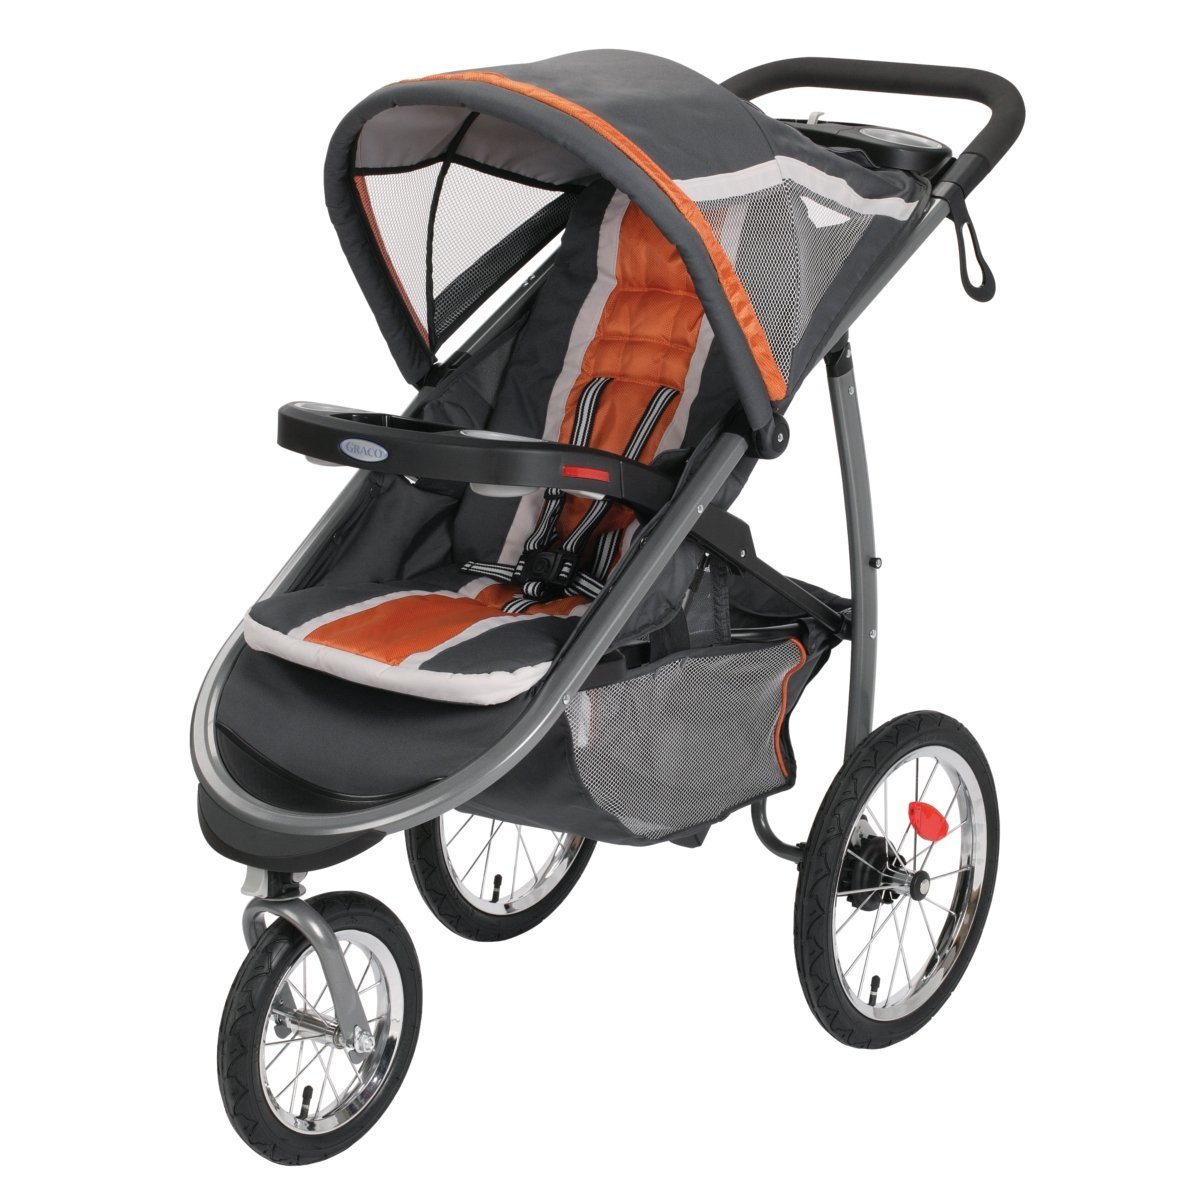 Graco Fastaction Fold Jogging Stroller Review Jogging Stroller Guru